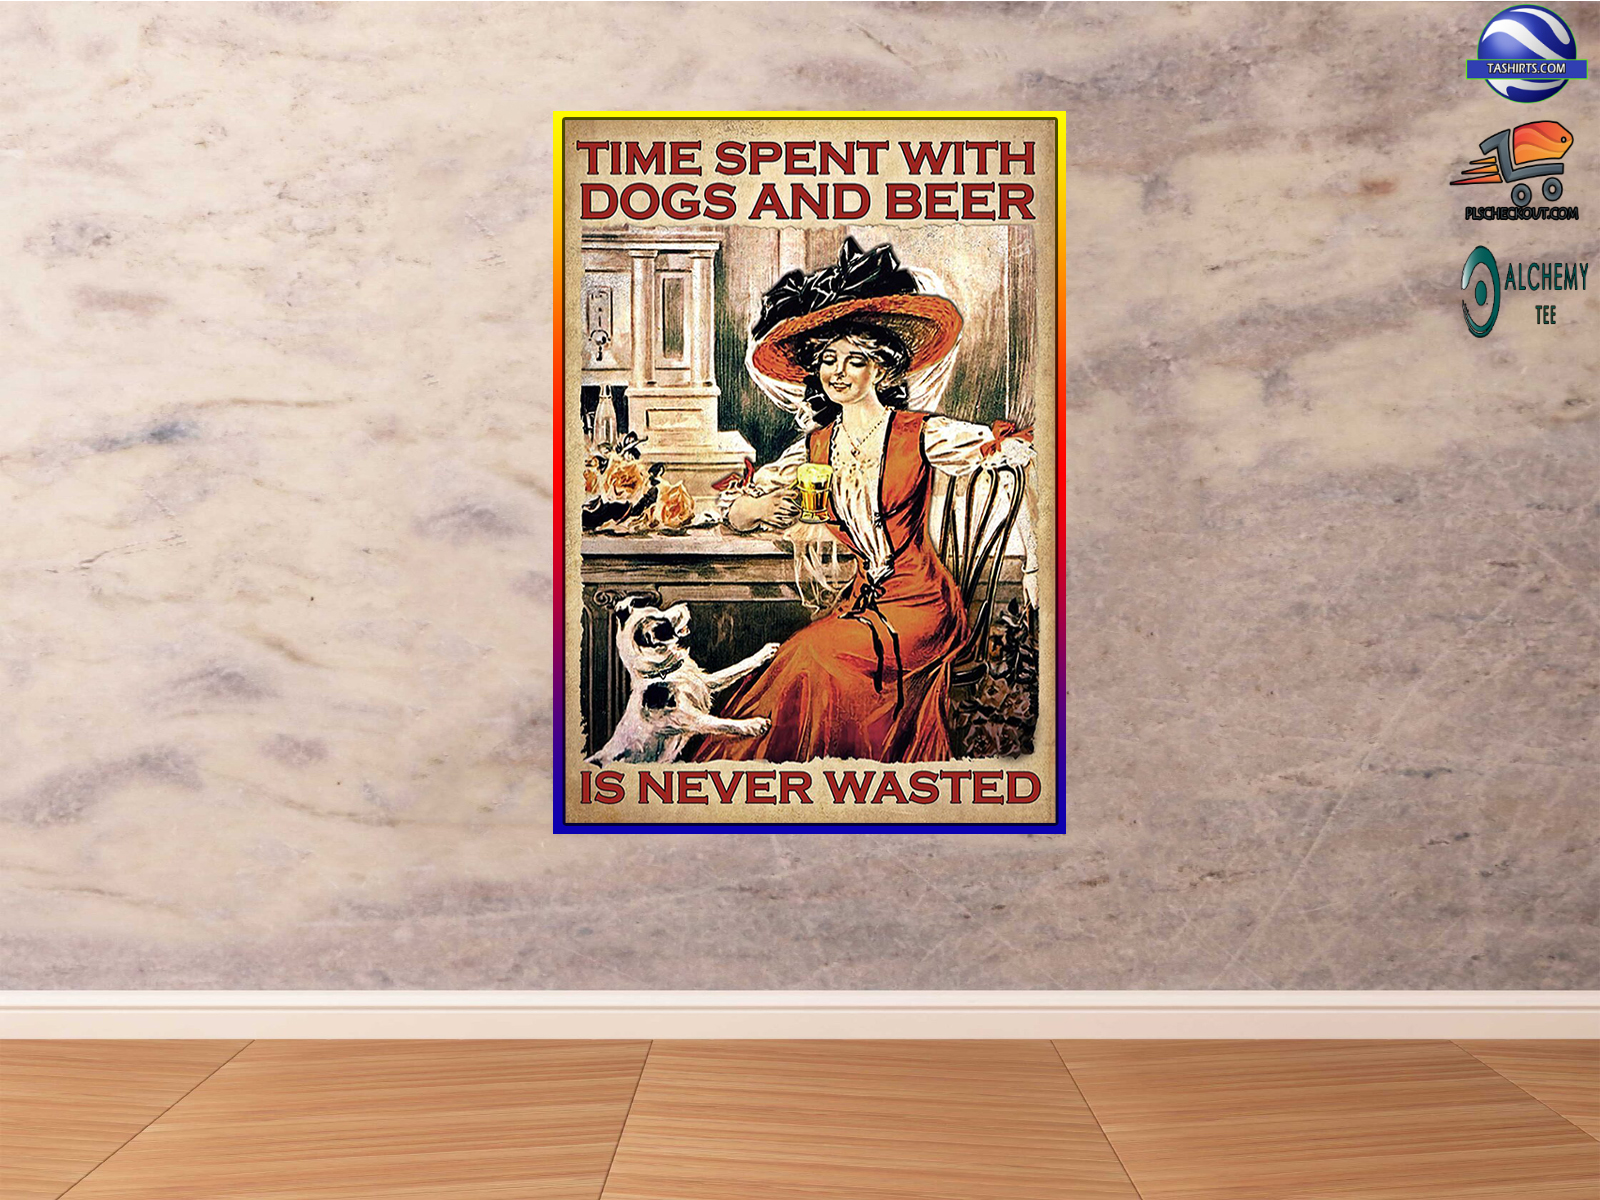 Girl Time spent with dogs and beer is never wasted poster